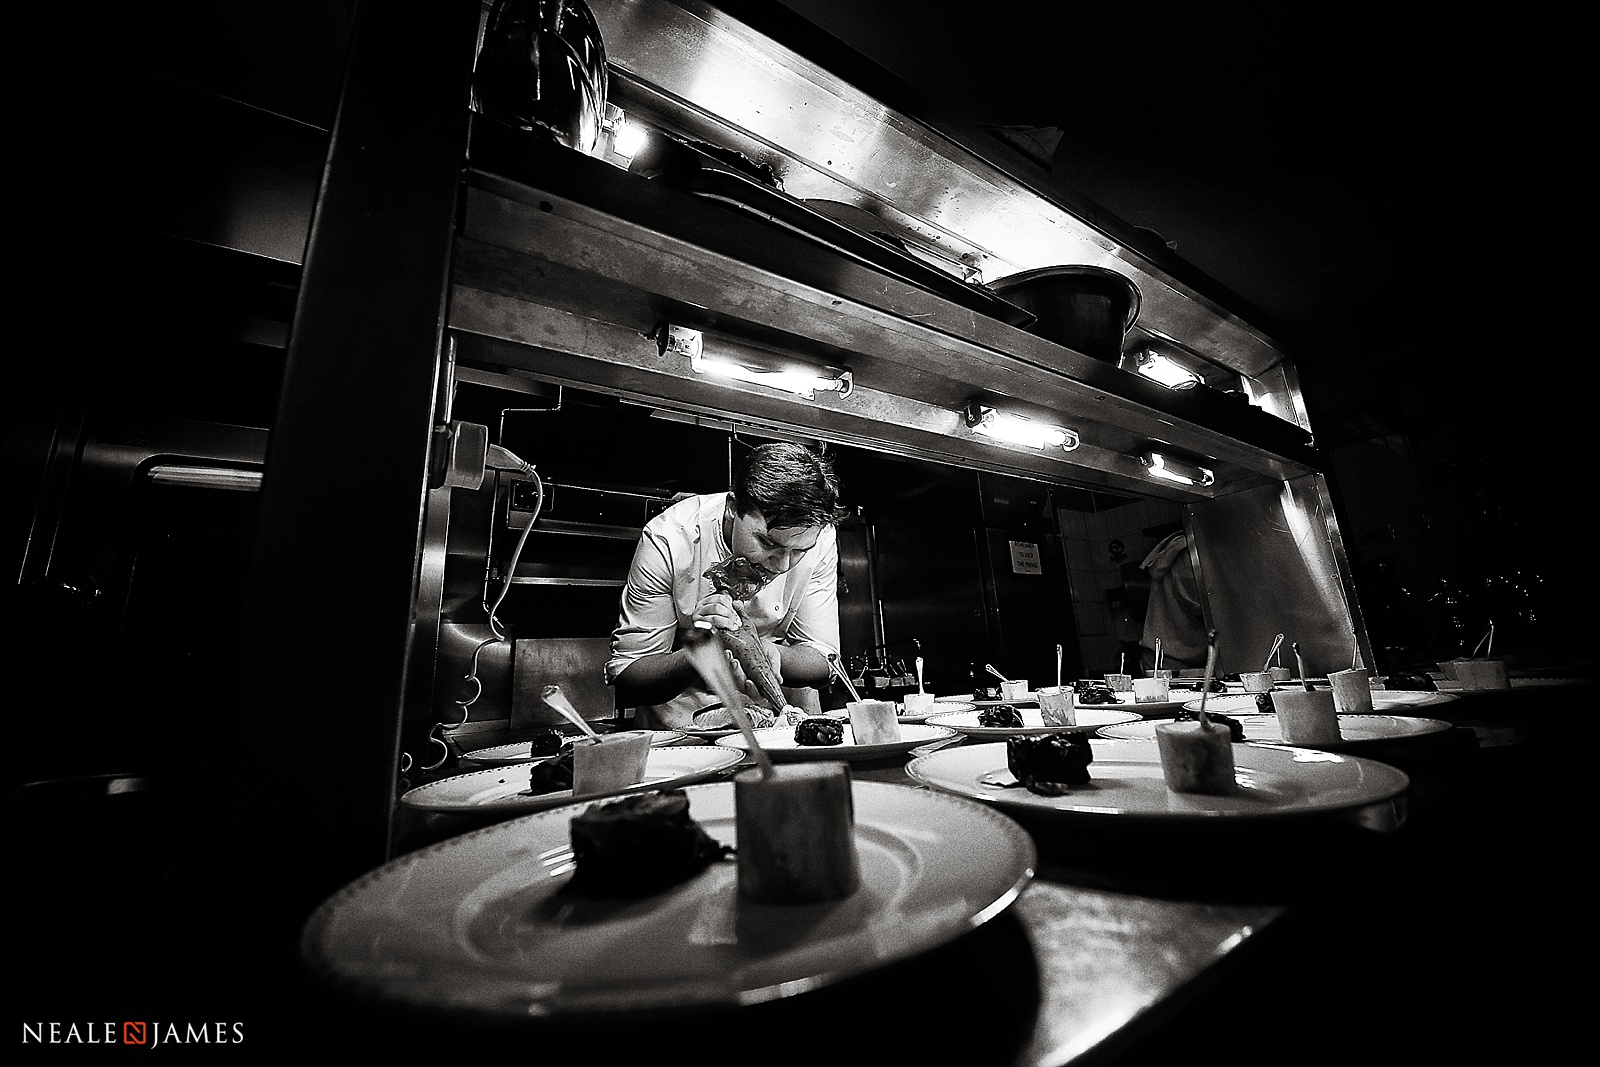 Black and white photo of a chef working at The Dorchester in London, at a wedding